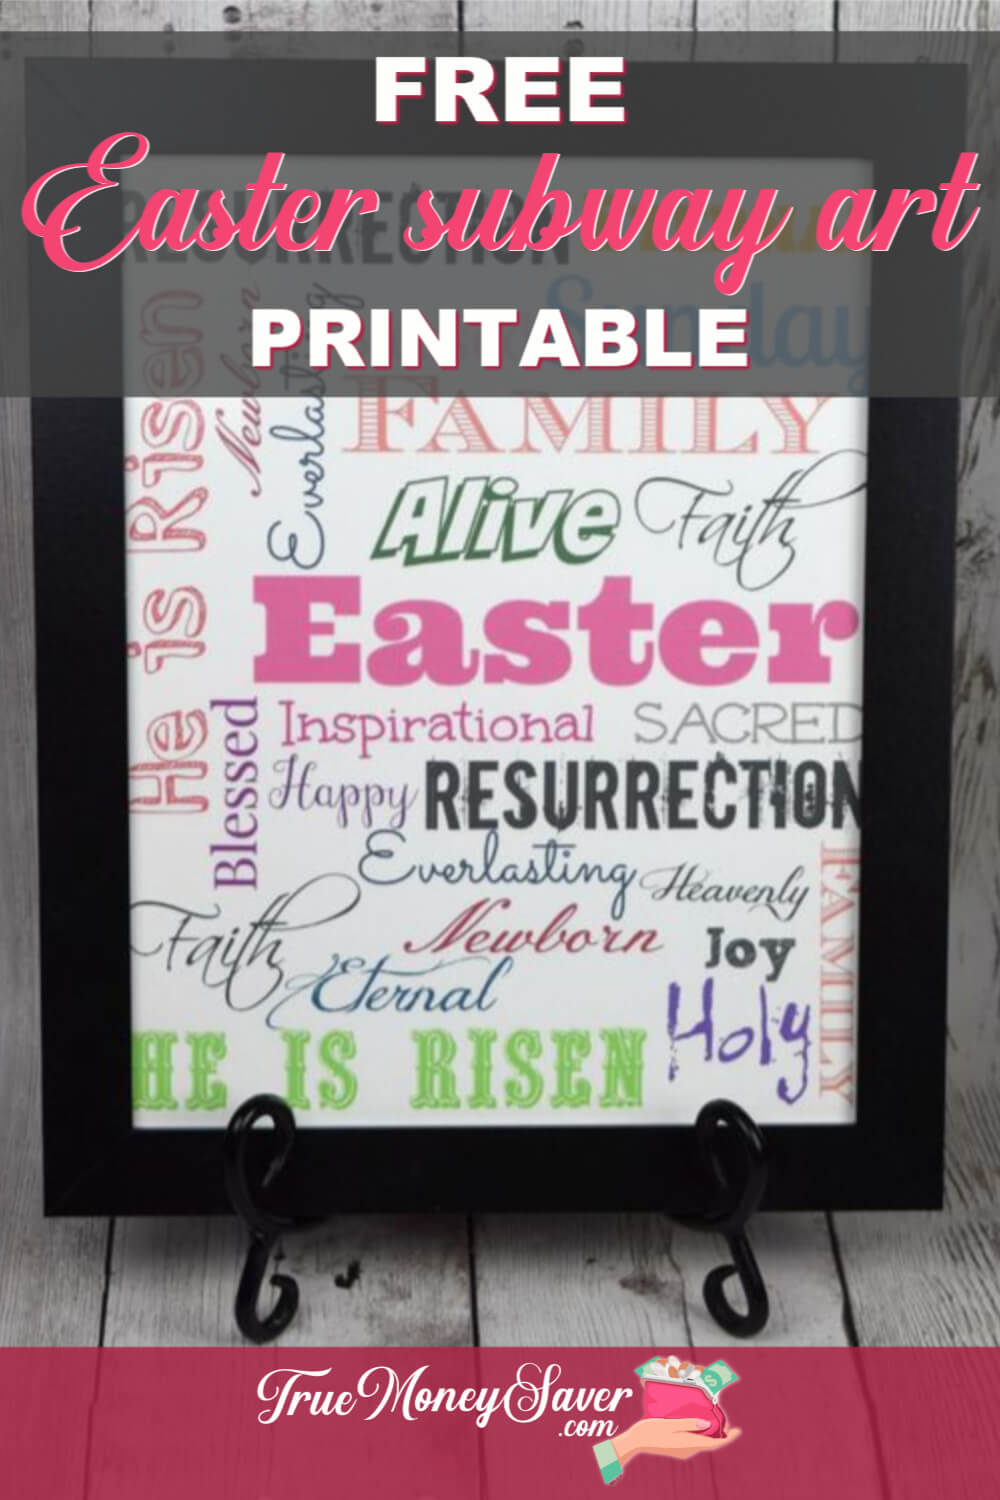 Ready to start your Easter art decor? Then grab this FREE Easter Subway Art Printable! FREE Easter printables are the best and cheapest way to spruce up your home for Easter! Print this today!